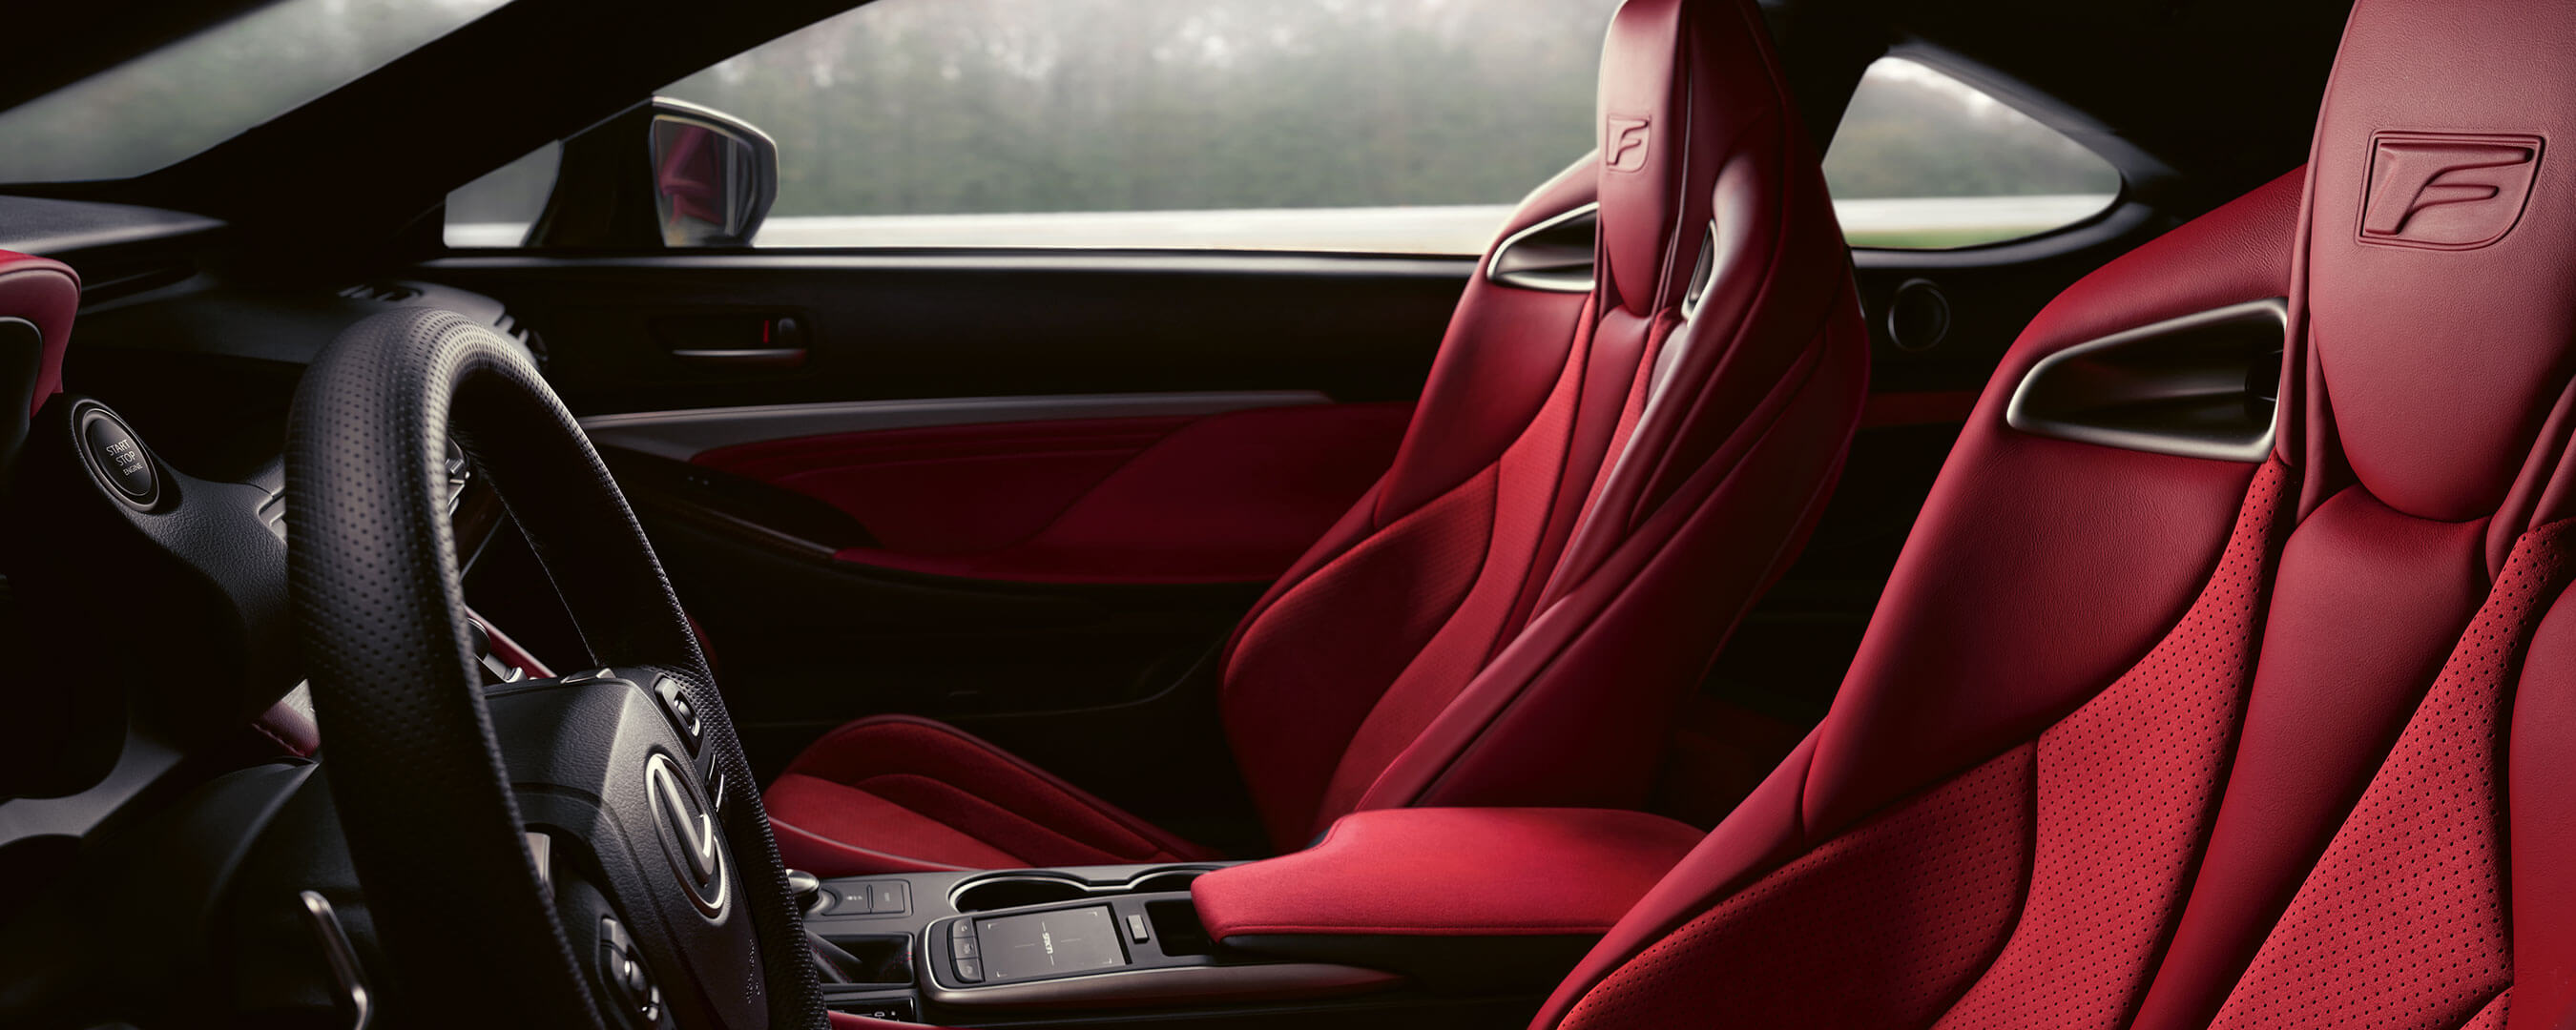 2019 lexus rc f experience hero interior rear